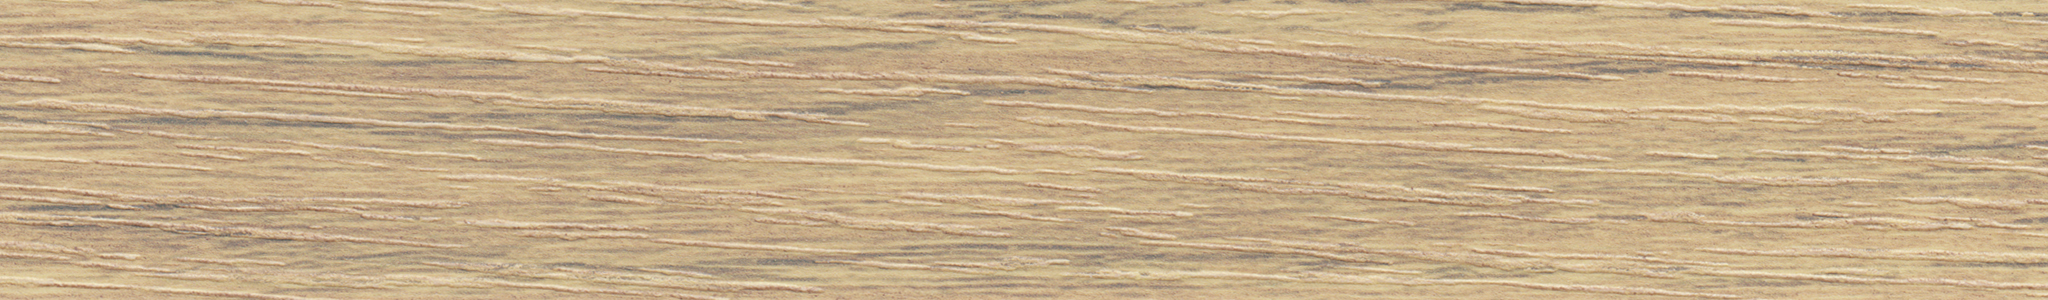 HD 241003 ABS Edge Oak Golden Pore Softmatt